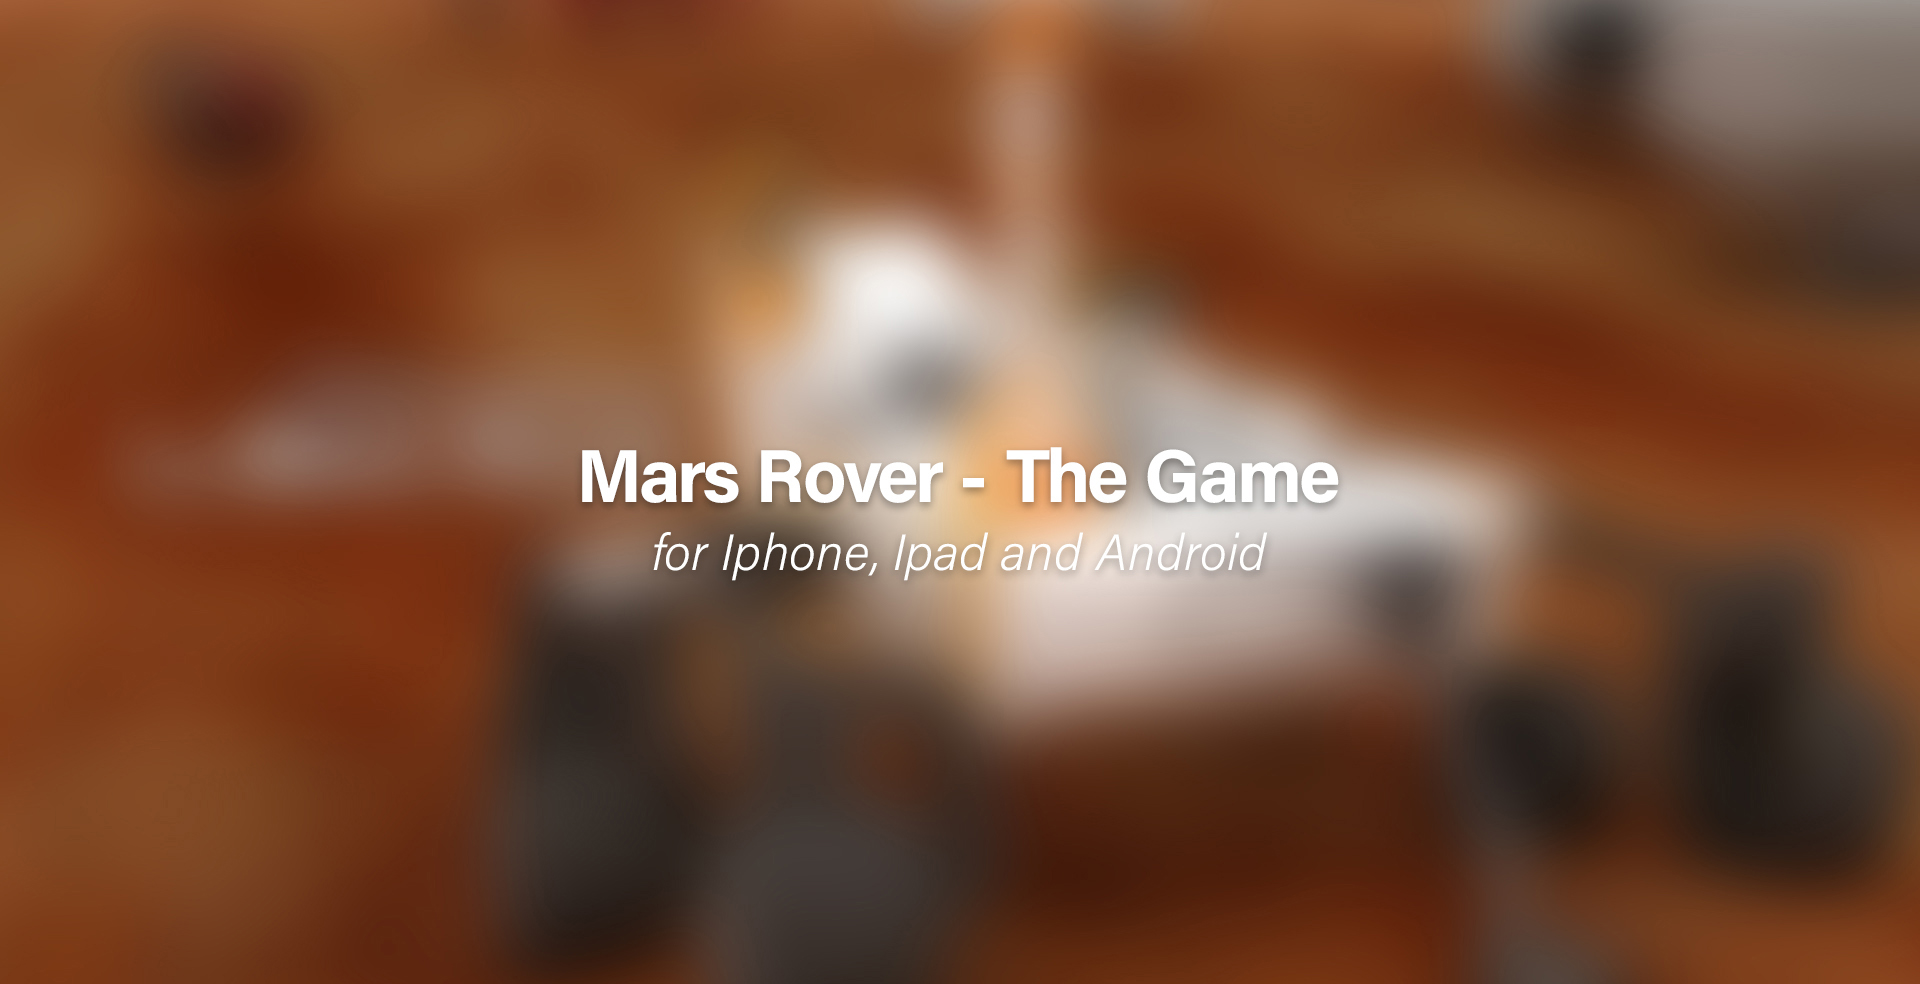 Mars Rover The Game